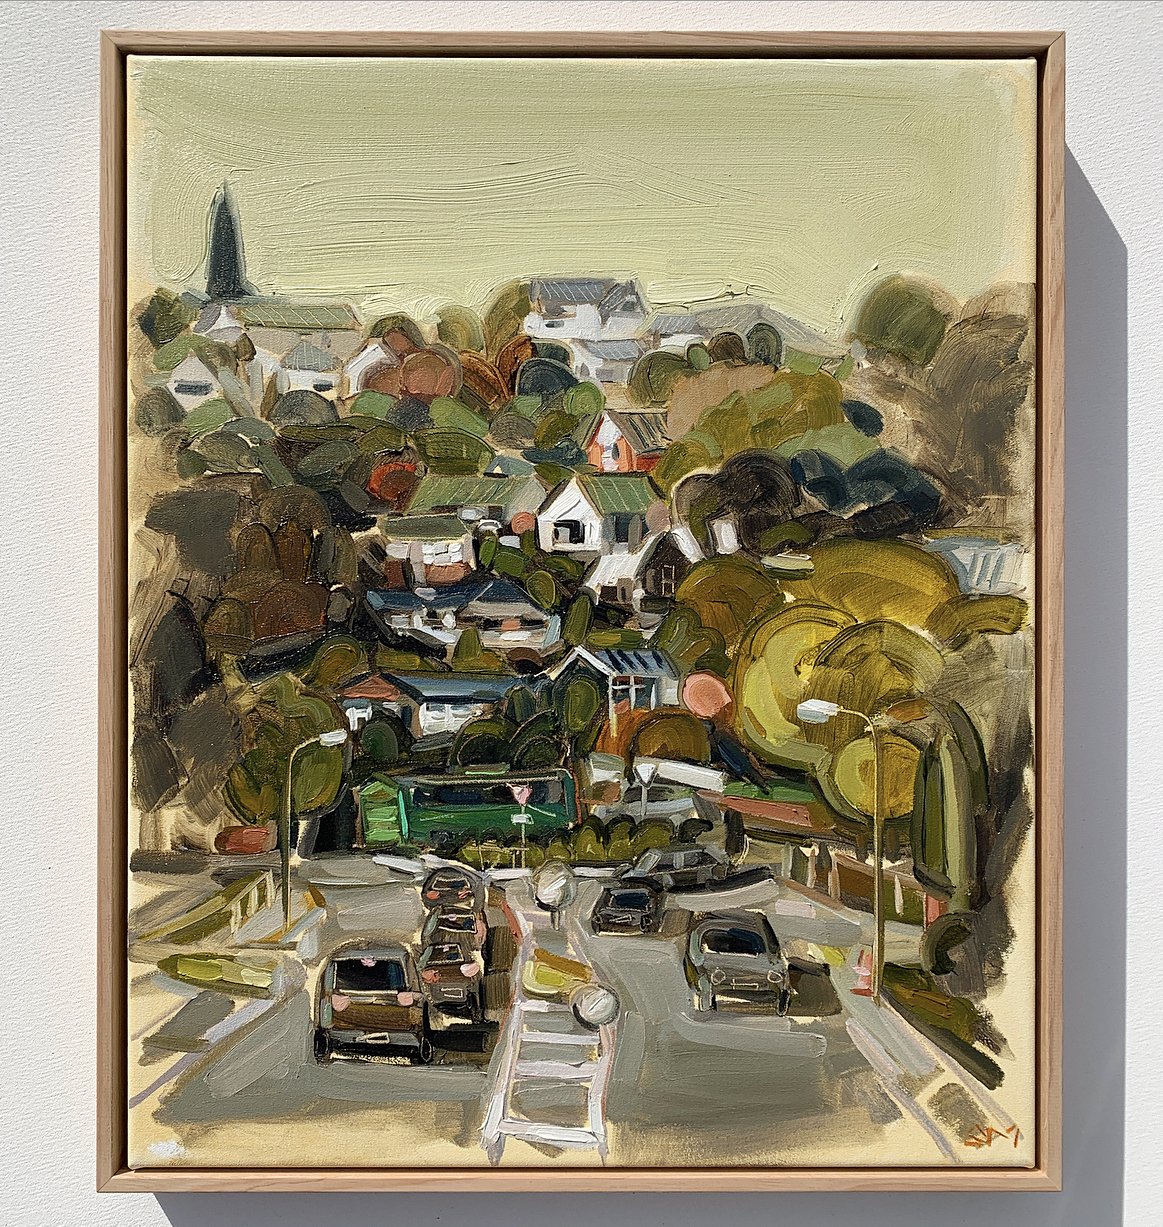 sam michelle 'hills, houses & bus' 58x48